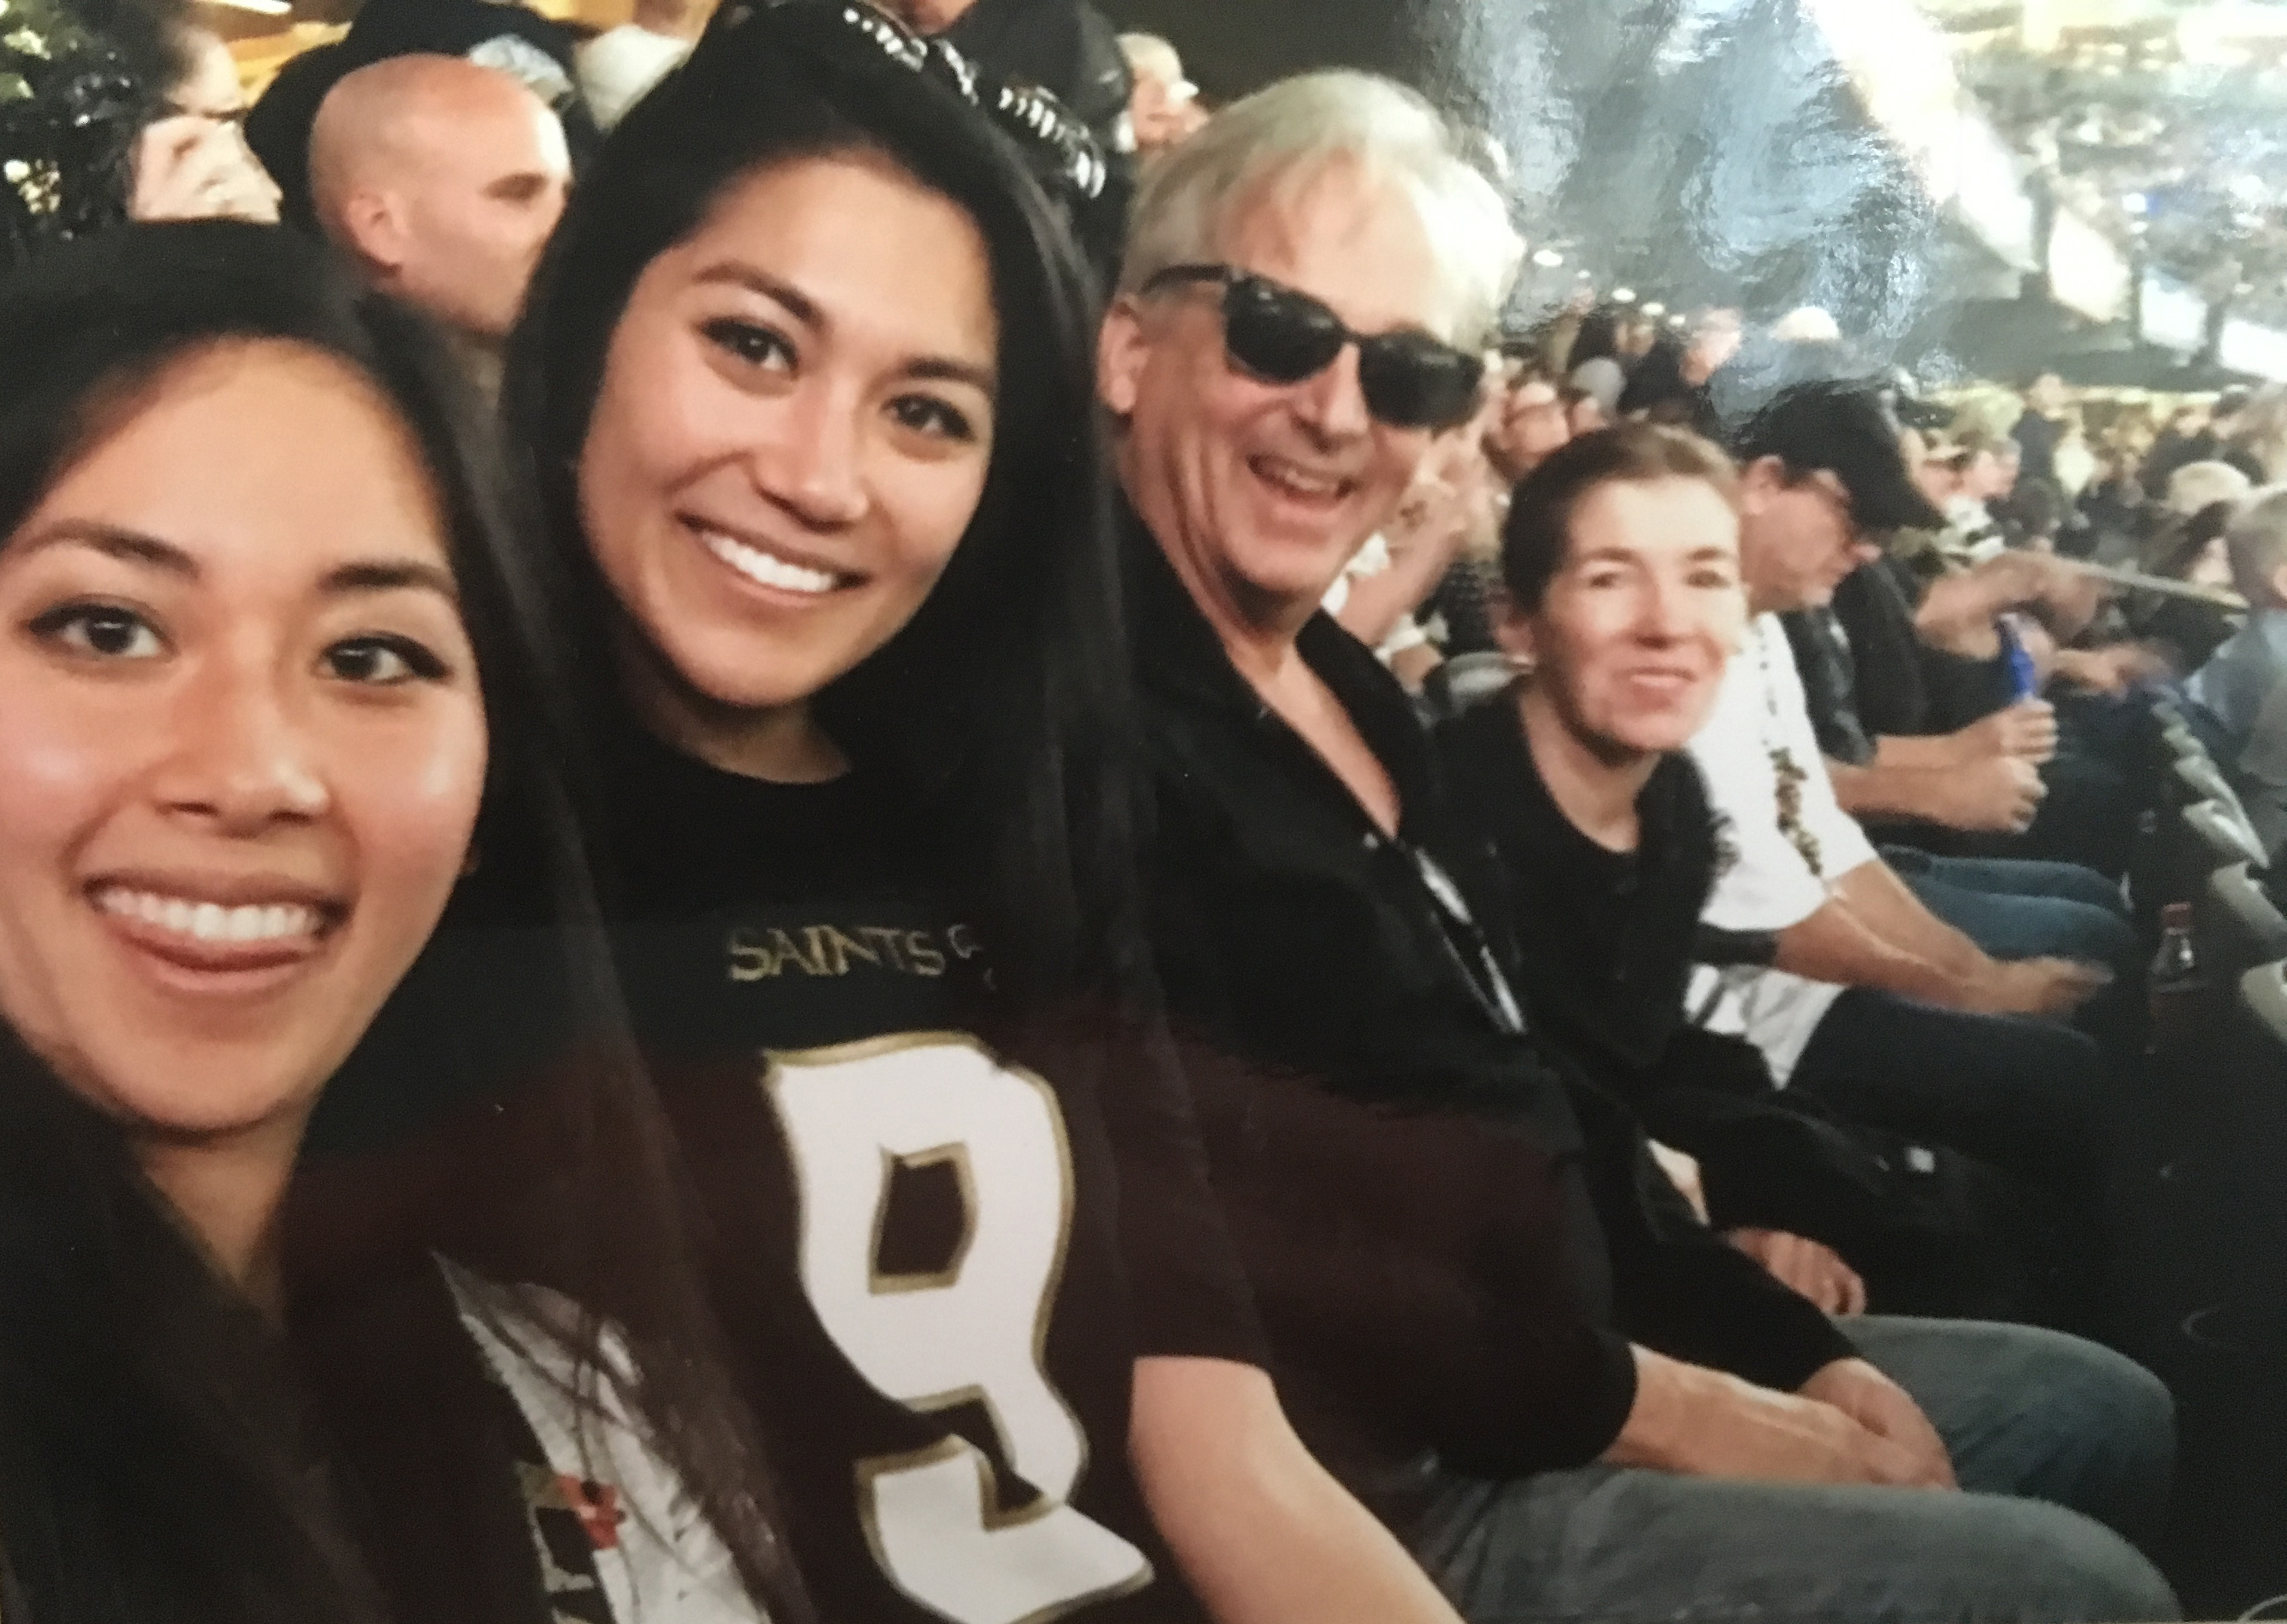 A Local's Life: A Look at a Few Die-Hard Saints Fans